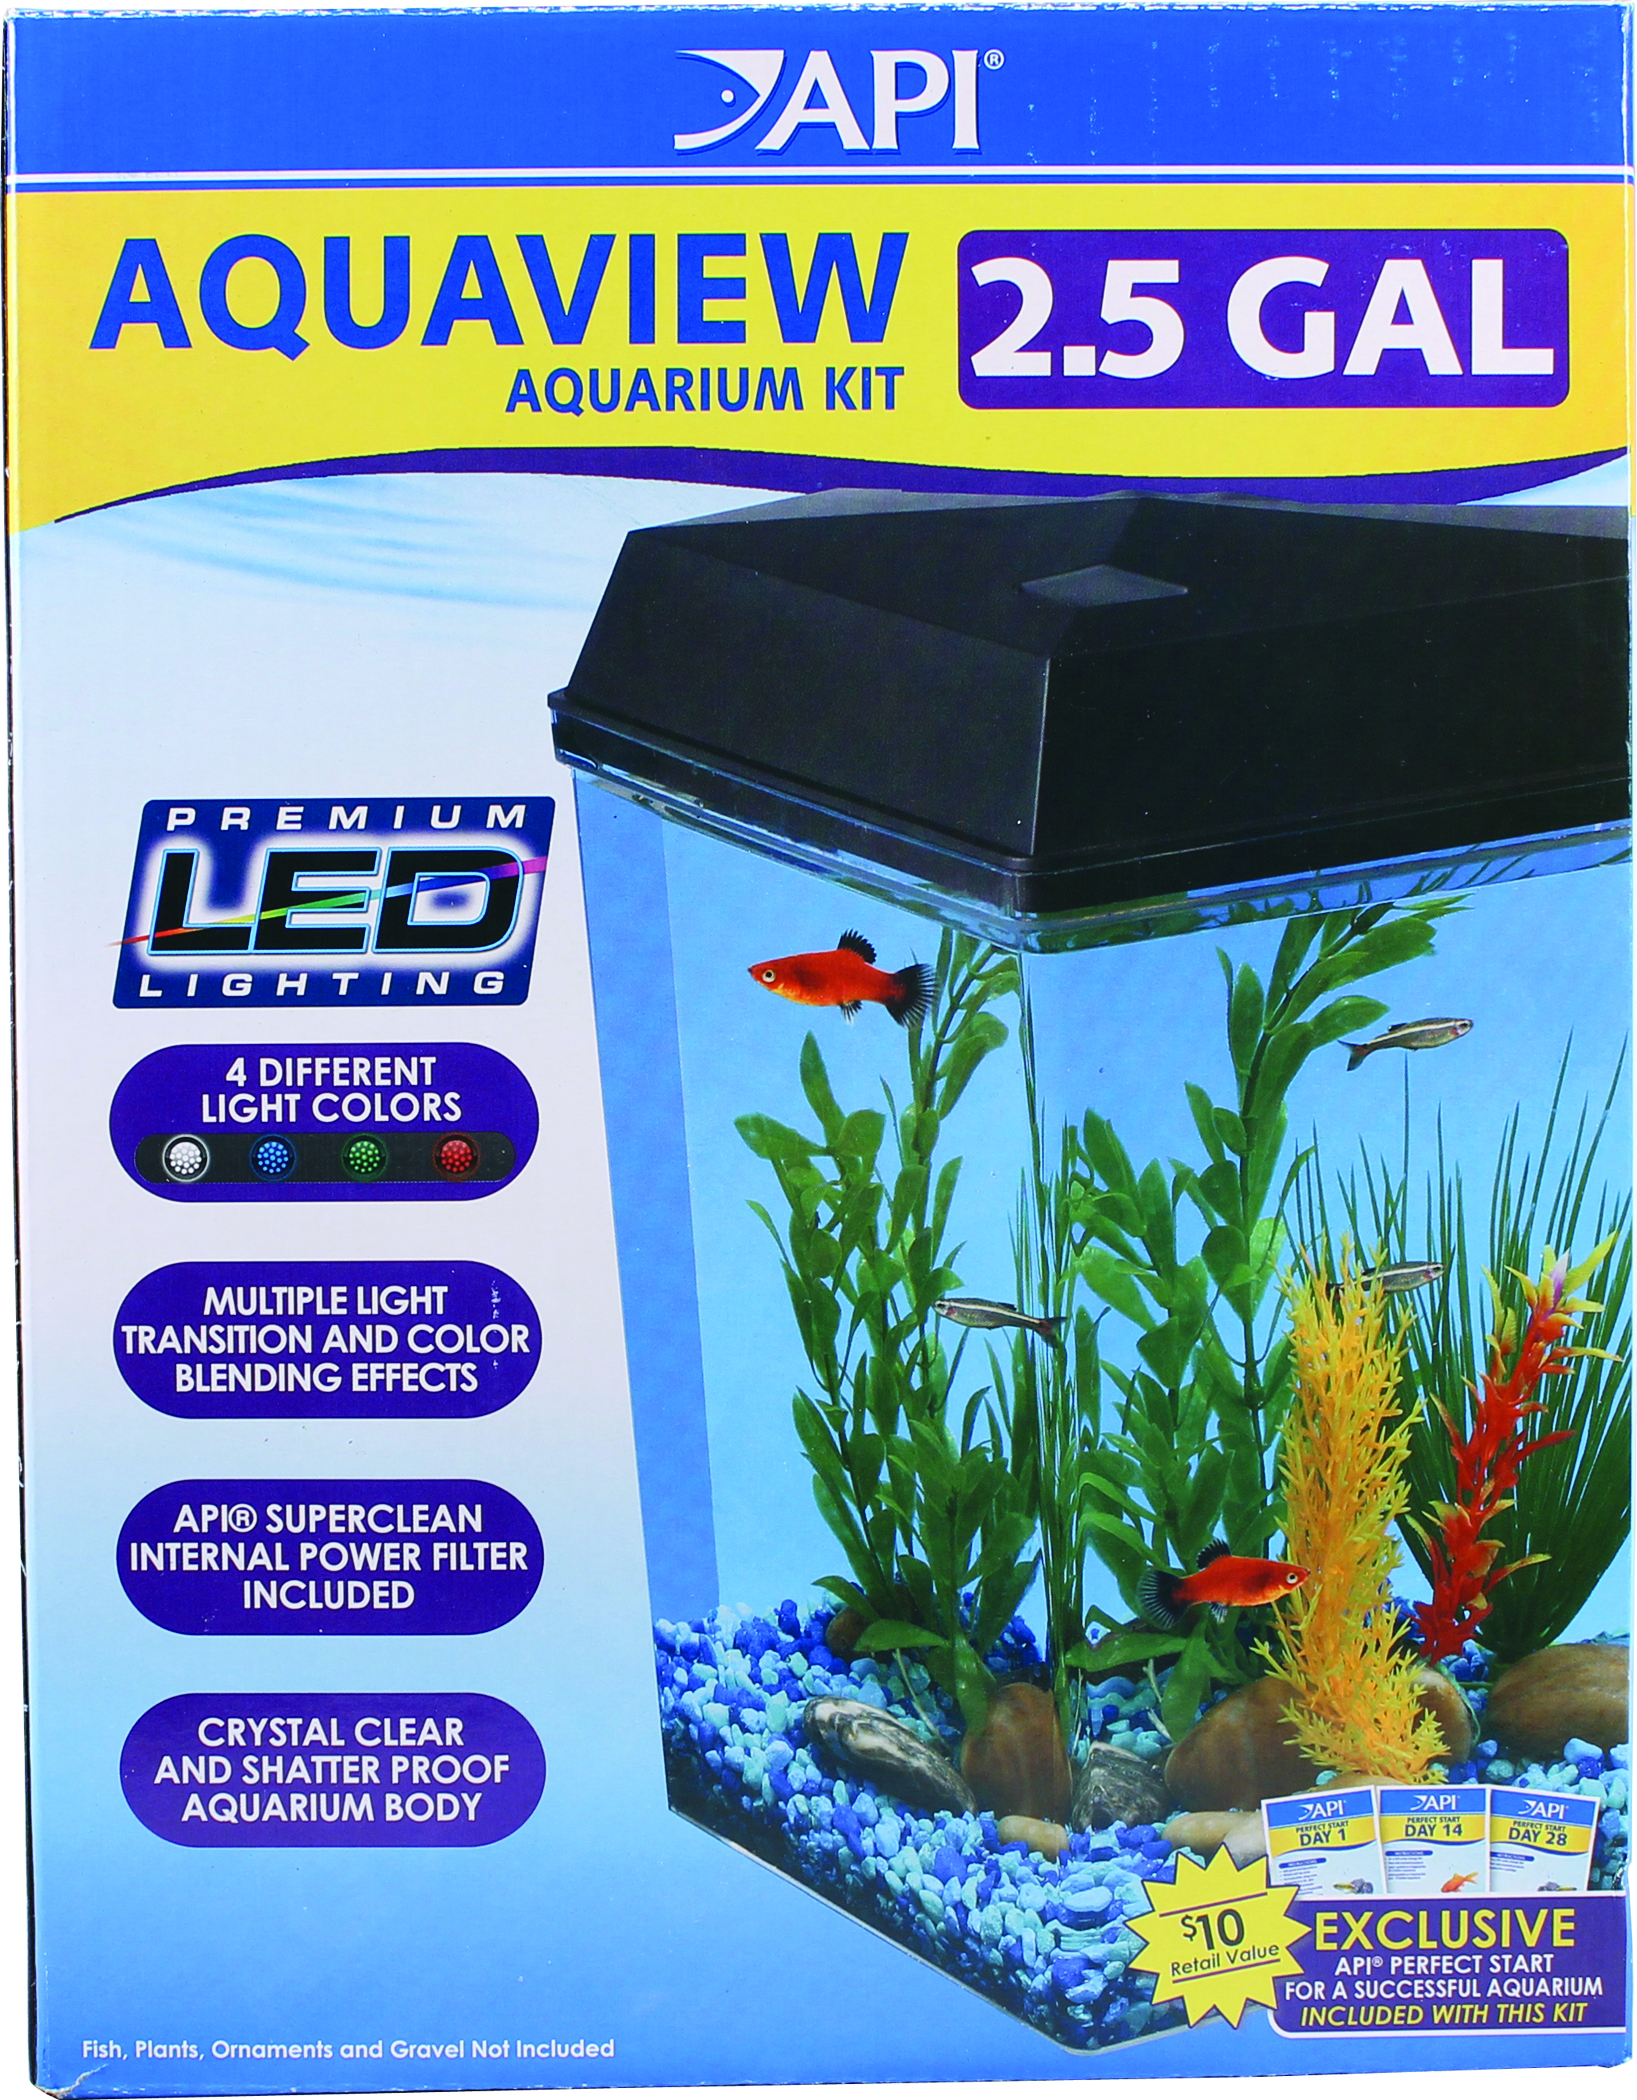 Aquaview Aquarium Kit 2 5 Gallon Dealtrend